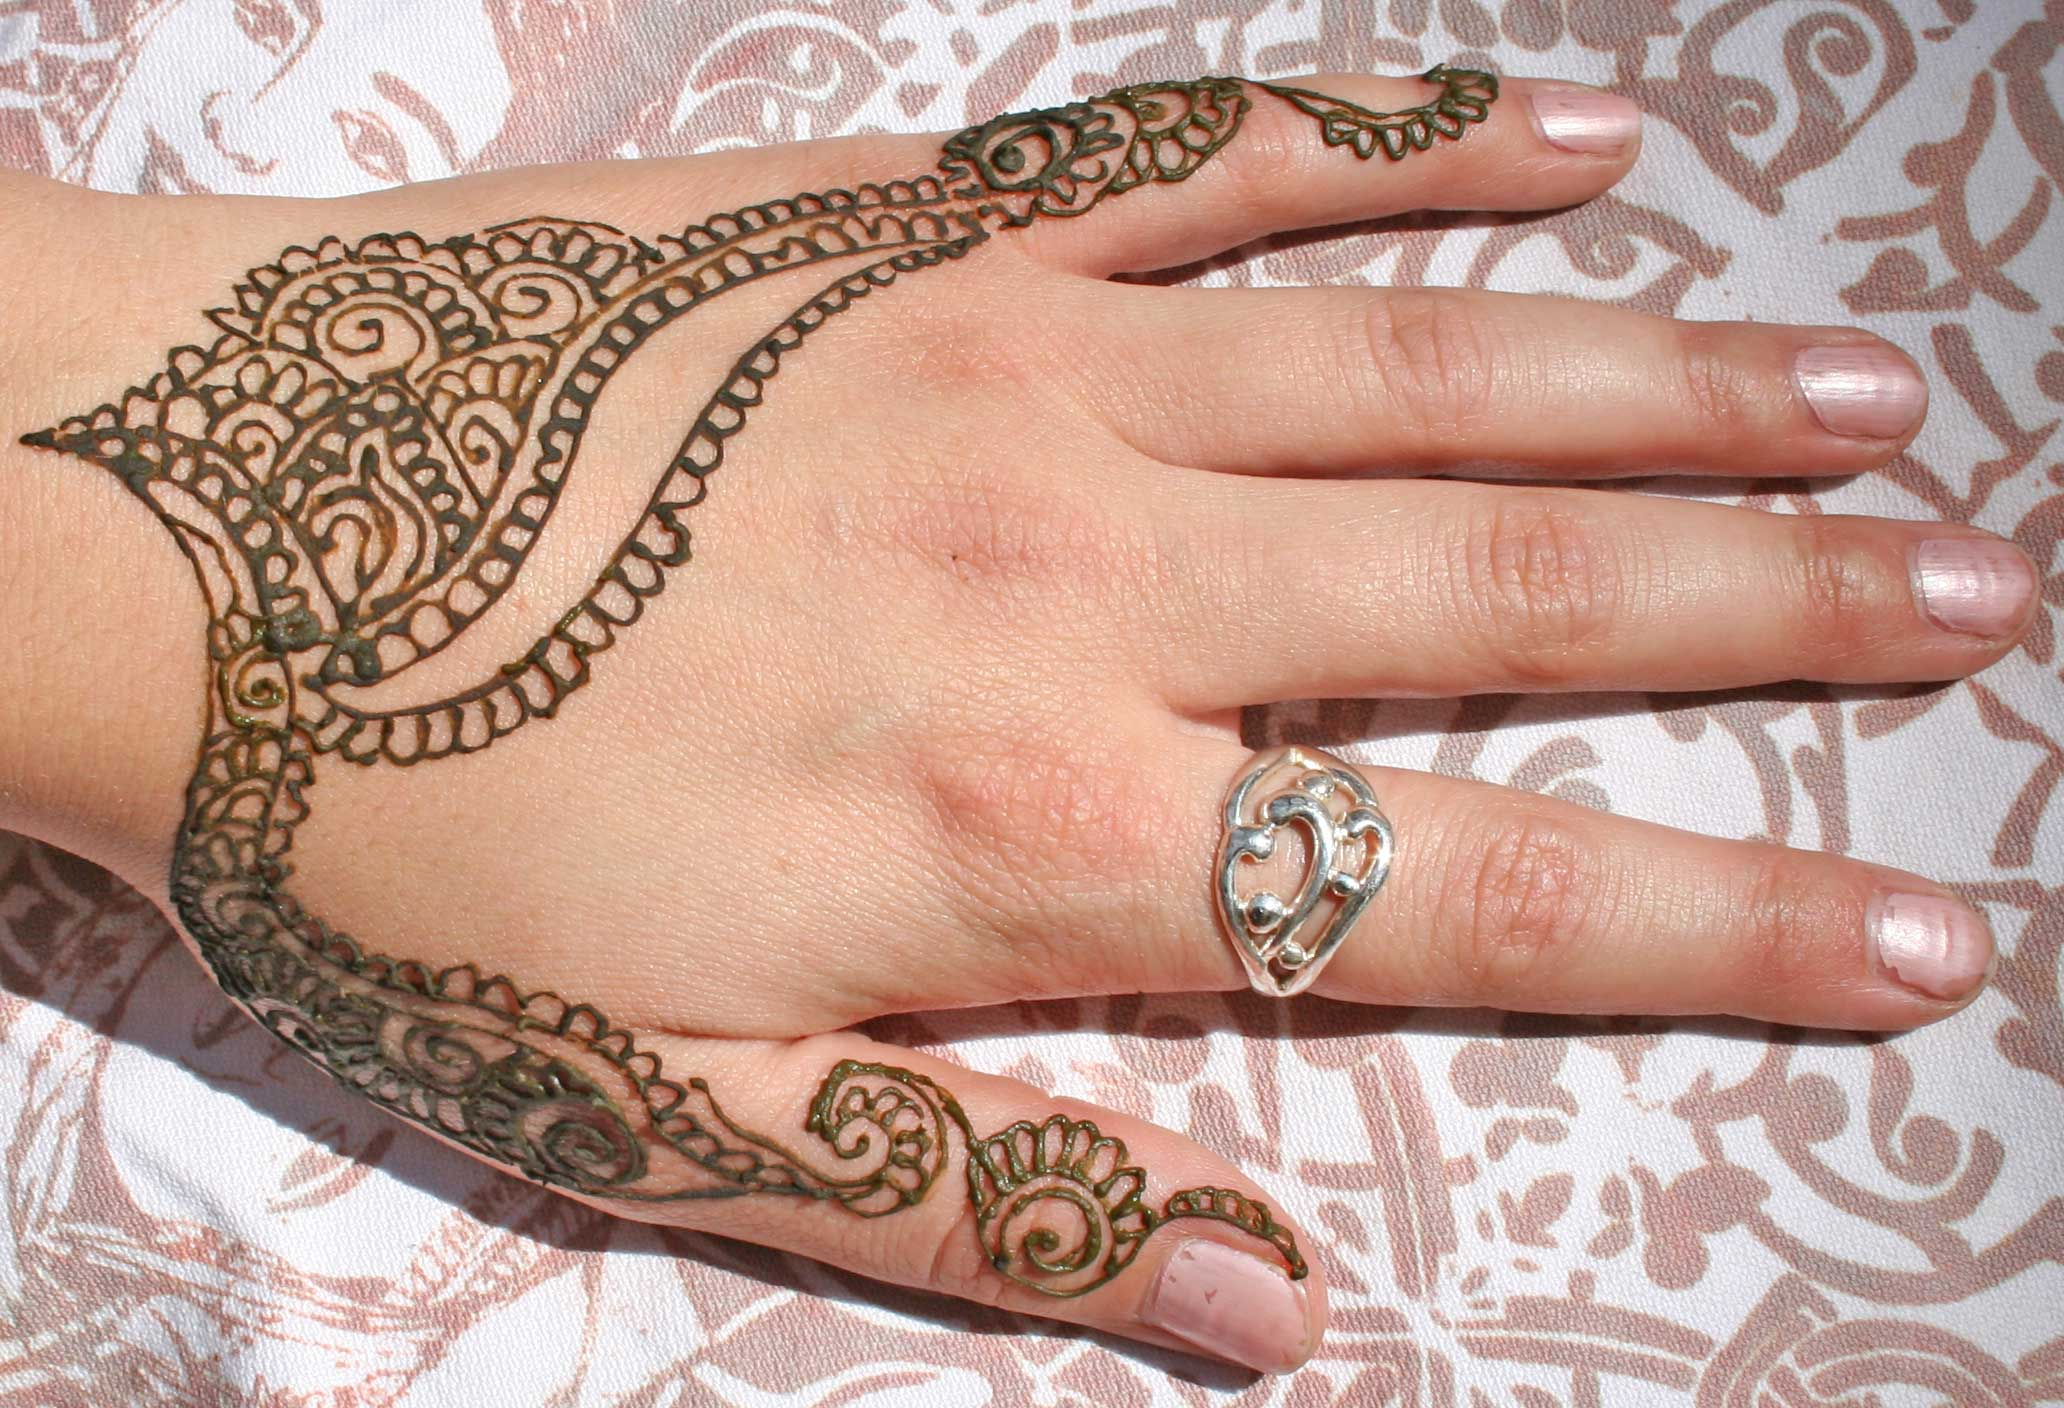 Mehndi Tattoo Artists : Henna tattoos designs ideas and meaning for you